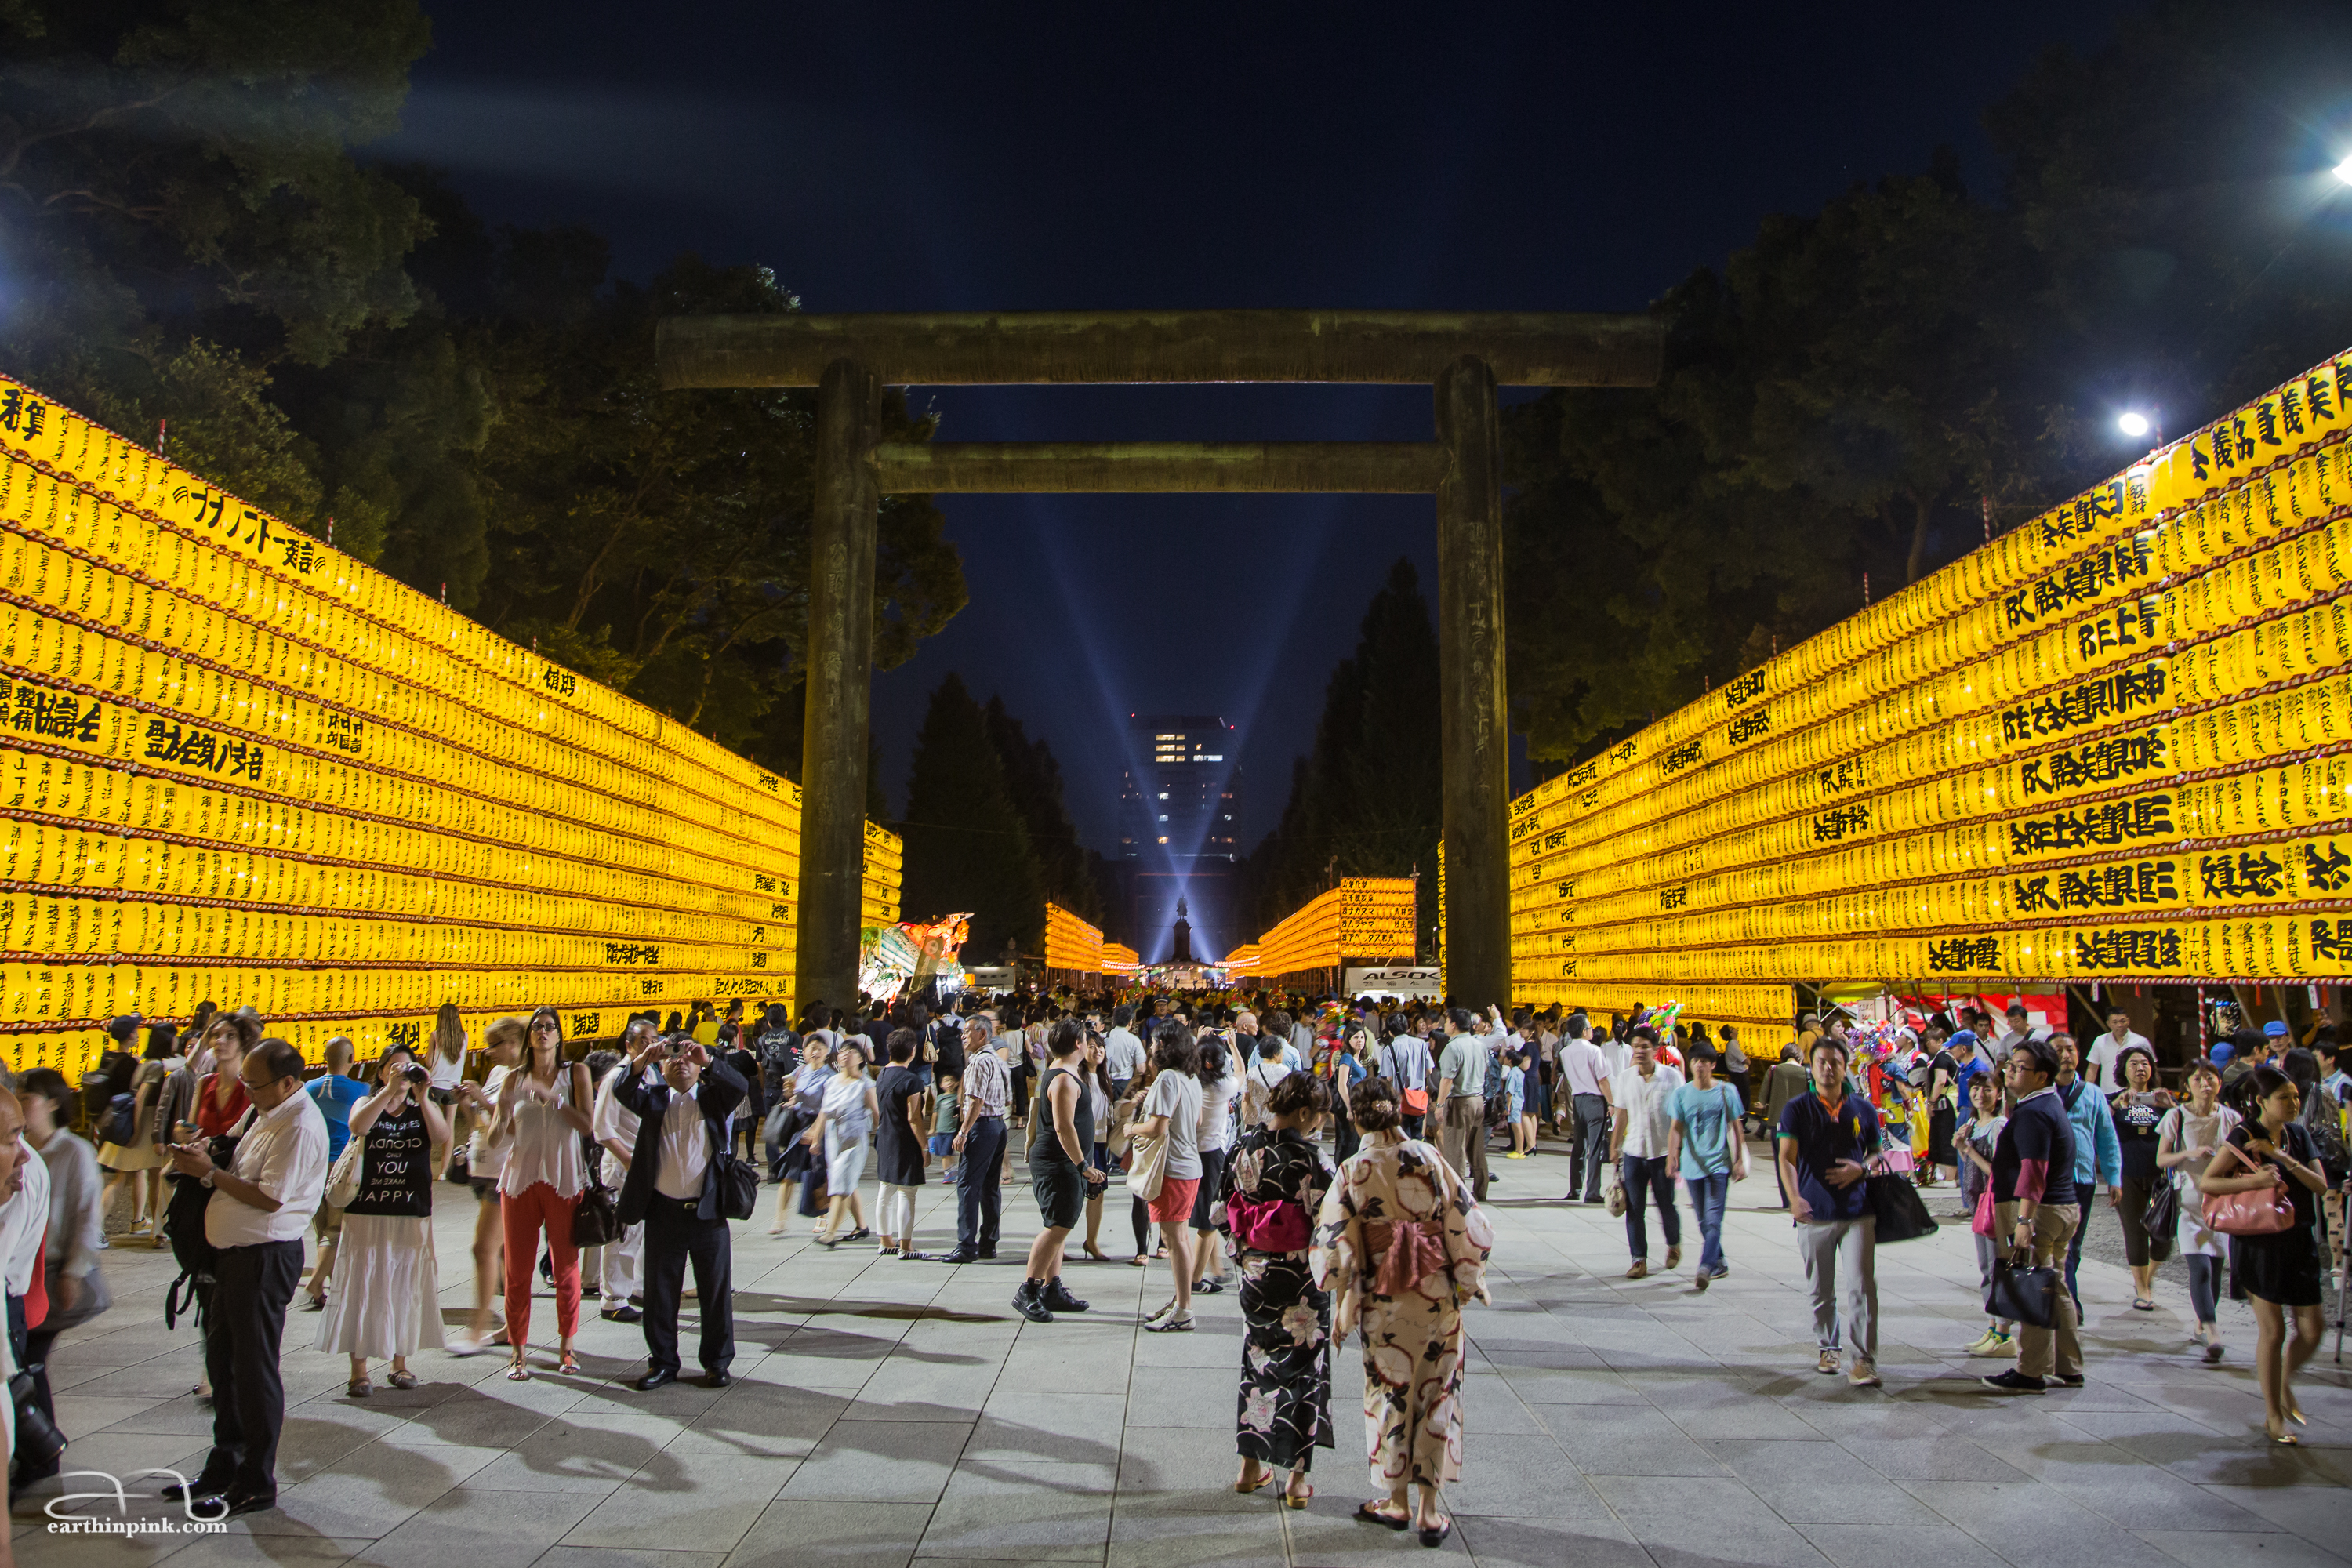 Lantern Festival held each year in mid-July at the Yasukuni Shrine near Kudanshita station in central Tokyo.